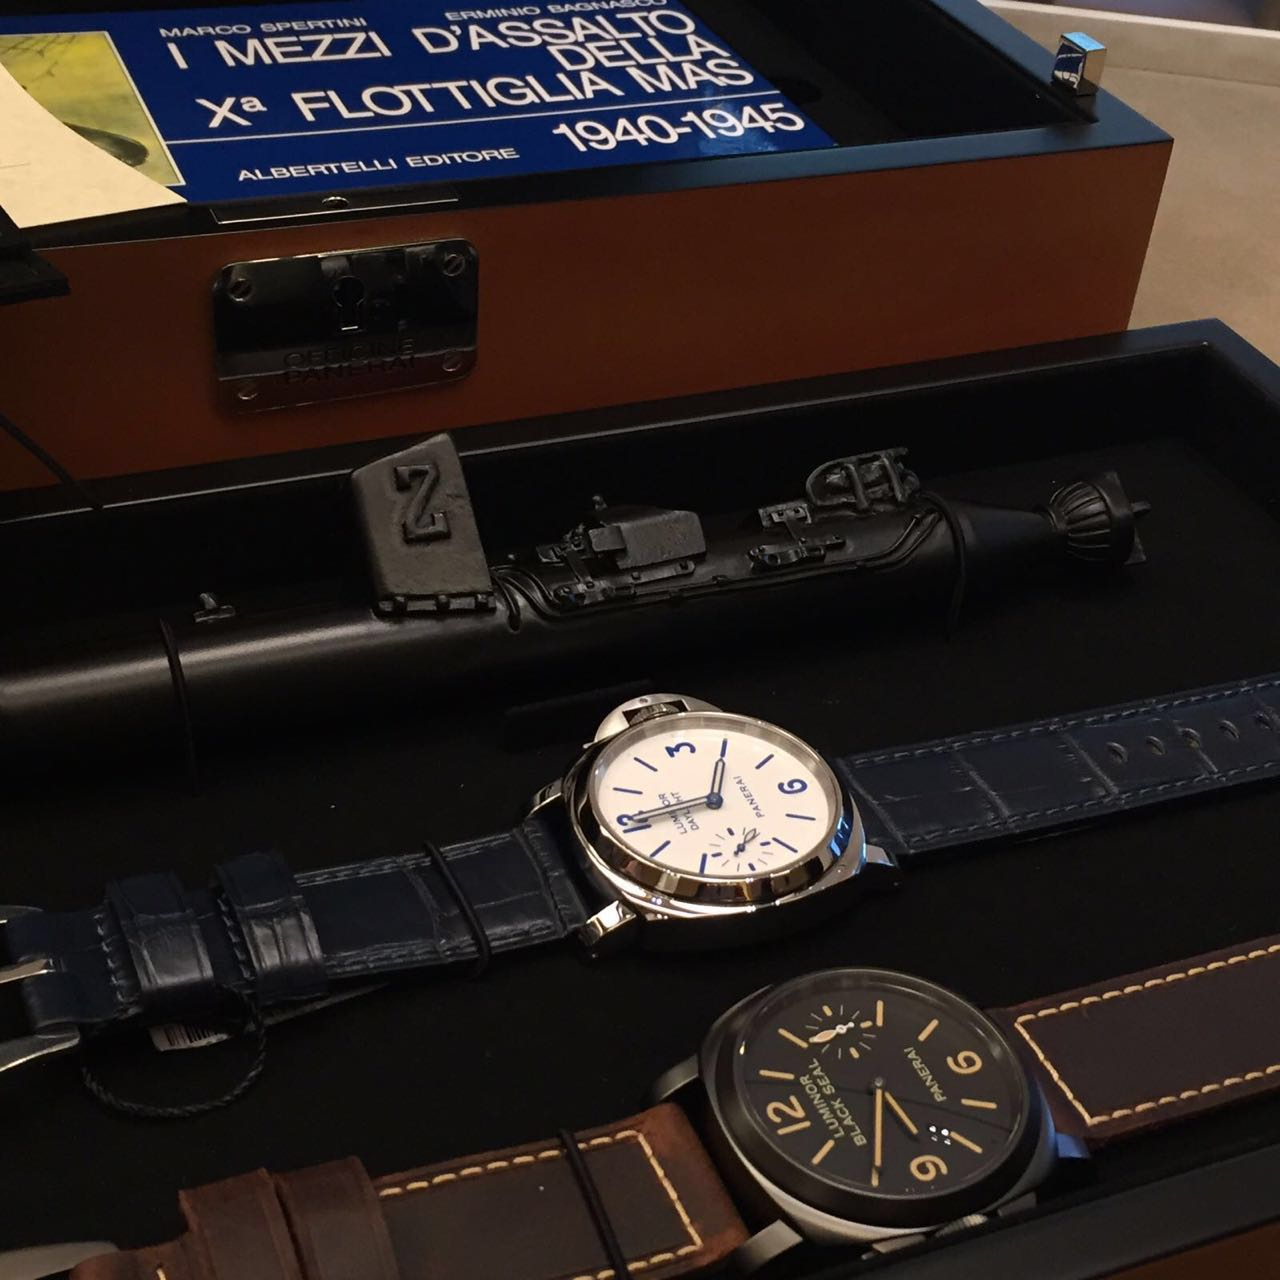 4089d56eabf For SIHH 2016 Officine Panerai has released another pair of watches that  should have the Paneristi around the world wanting to purchase this second  set!